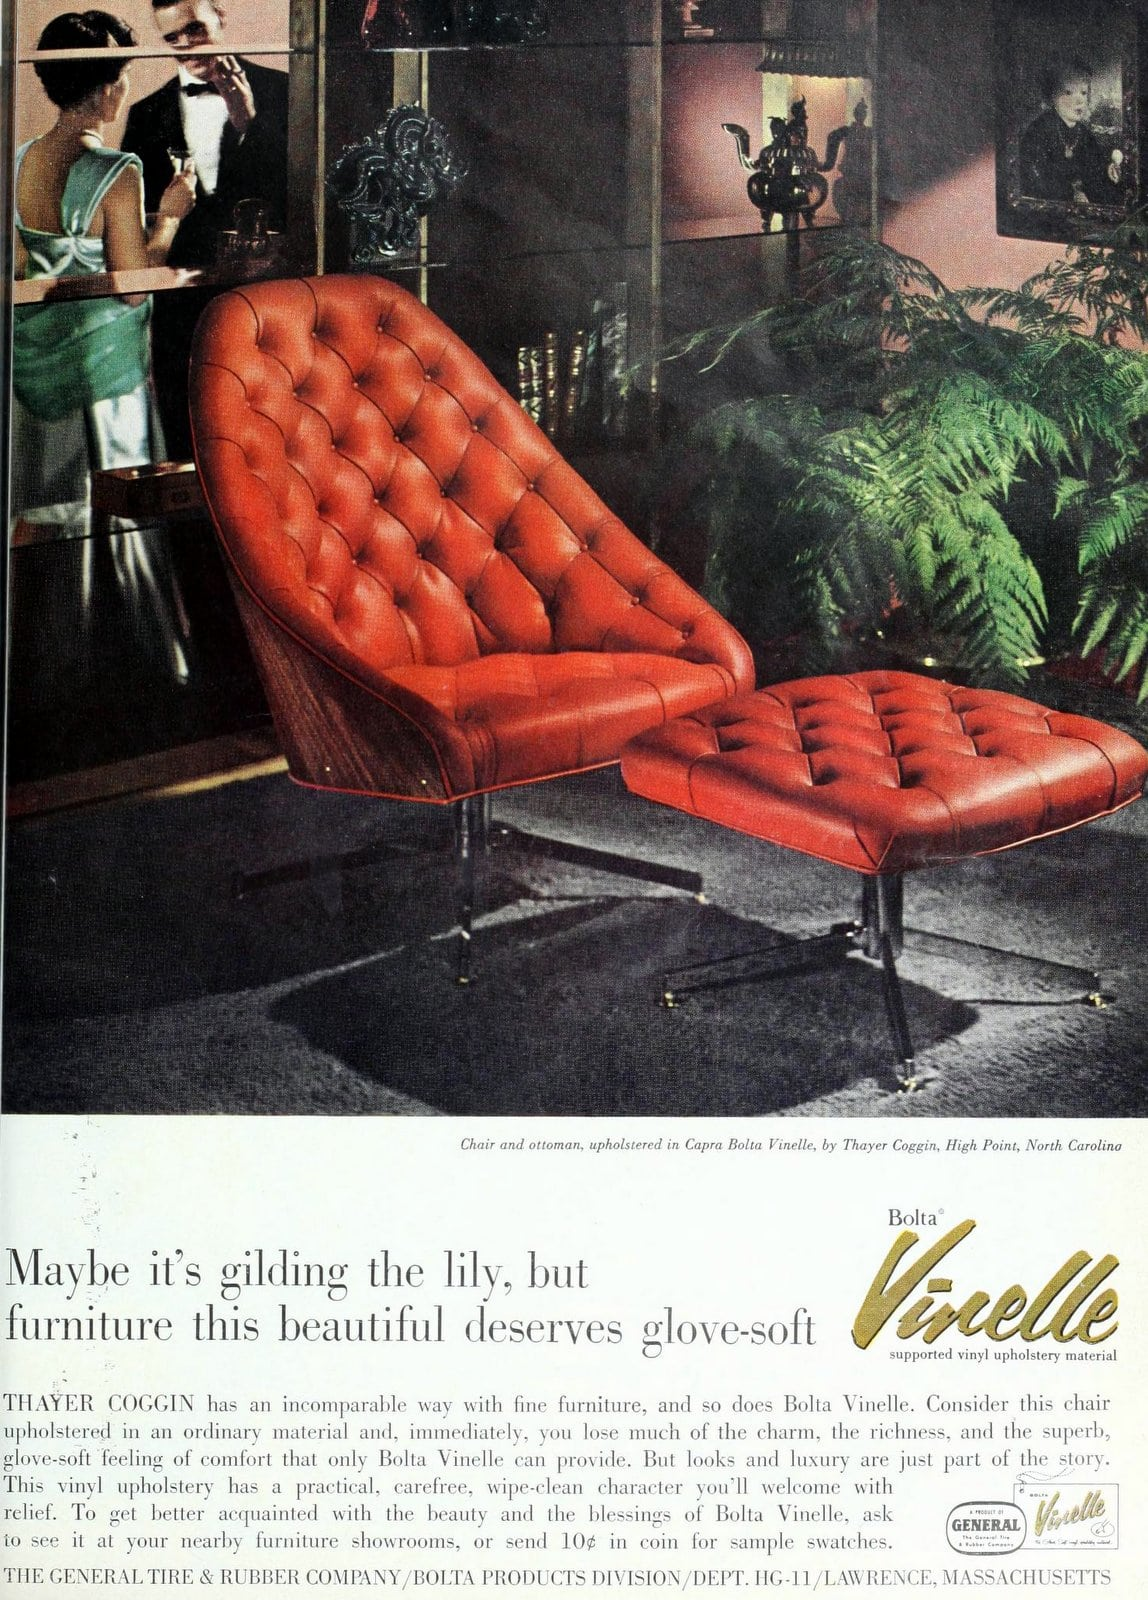 Vinelle vinyl chair and ottoman - Vintage home furnishings from 1961